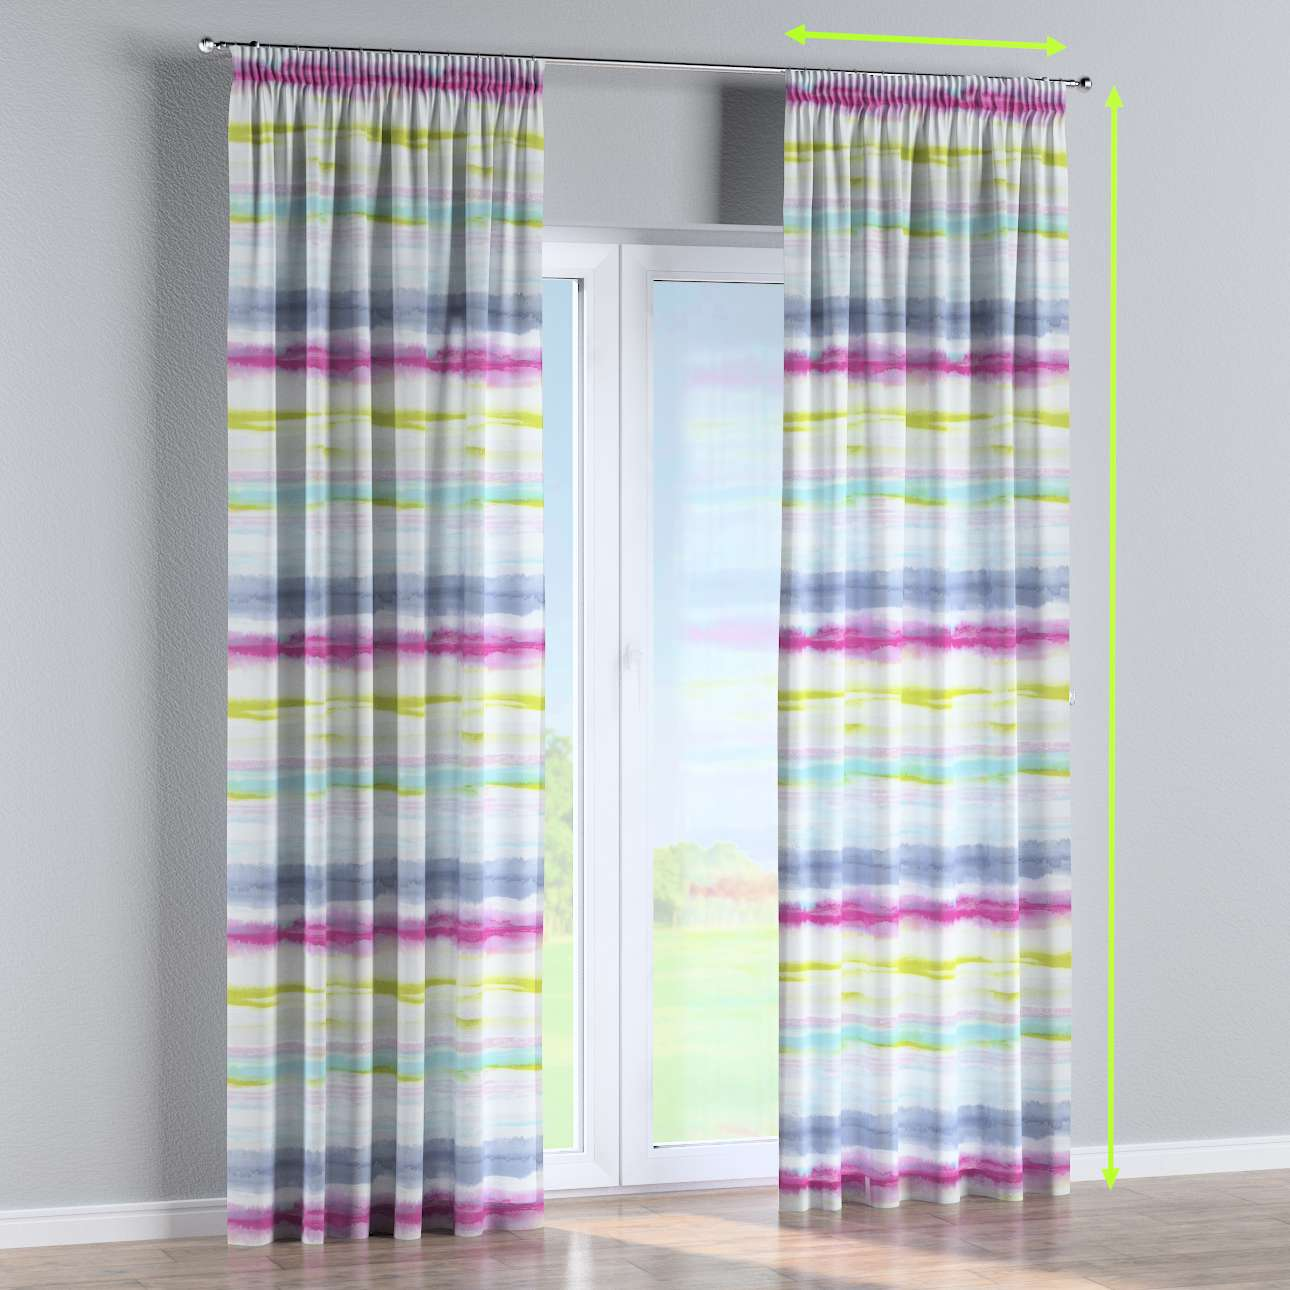 Pencil pleat lined curtains in collection Aquarelle, fabric: 140-69